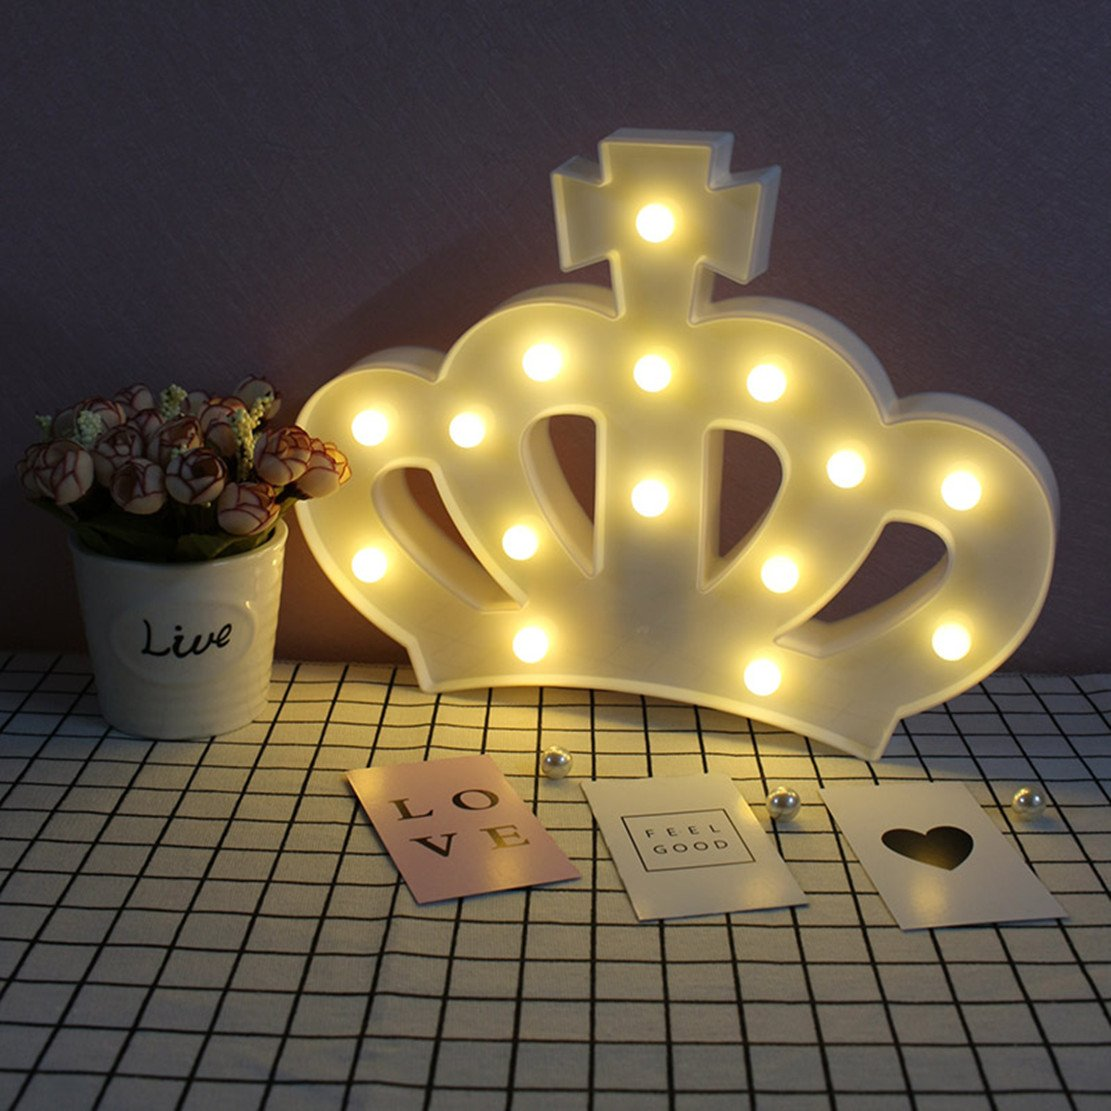 QiaoFei 3D Crown Marquee Sign Light,LED Queen Princess Kings Shaped Sign-Lighted,Wall Decor for Chistmas,Birthday party,Kids Room, Living Room, Wedding Party Decor(White) by QiaoFei (Image #1)